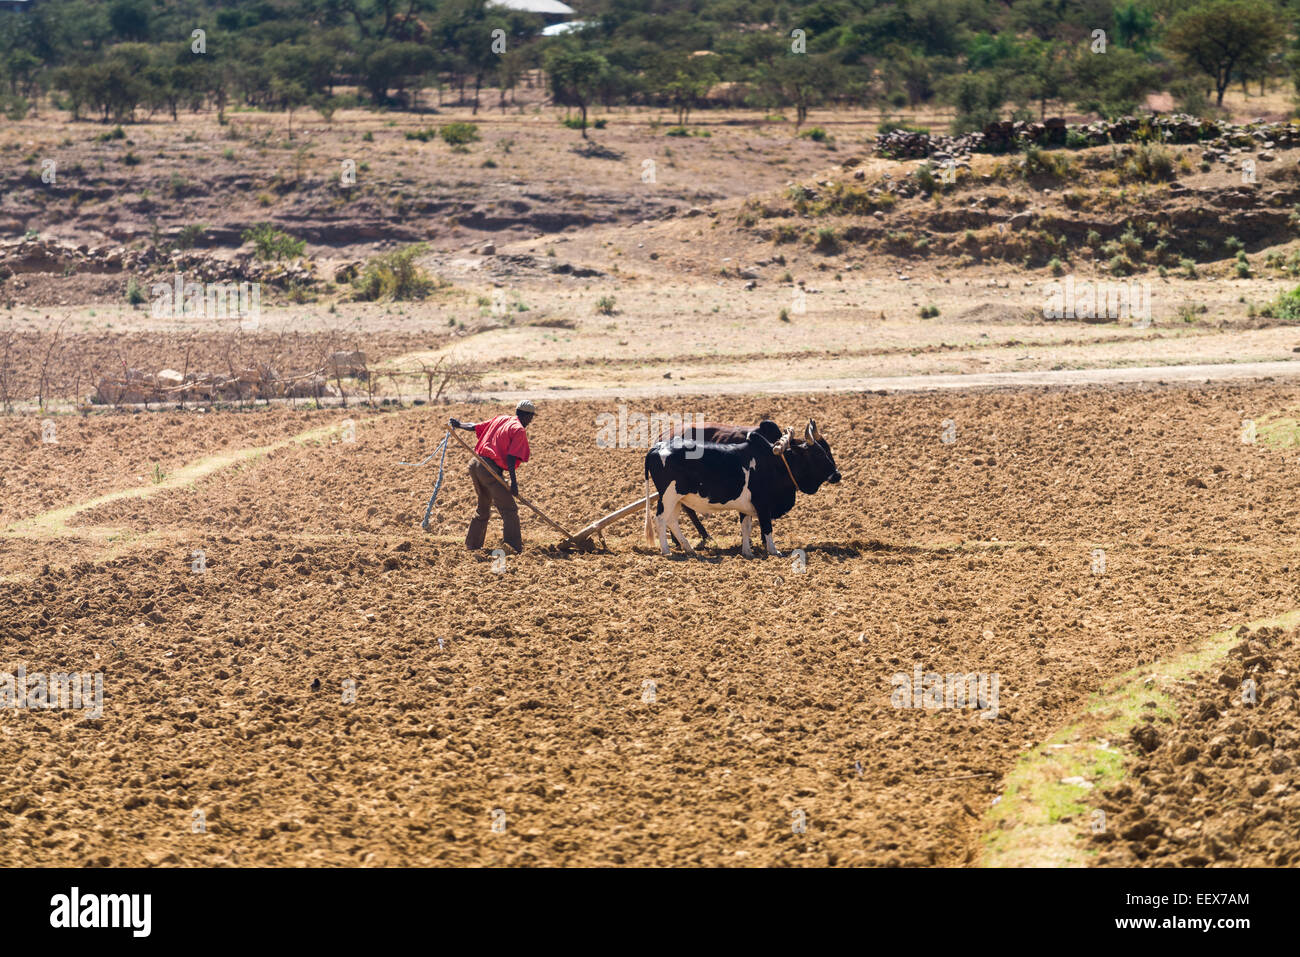 Farmer working his field, Simien Mountains National Park, Ethiopia, Africa - Stock Image